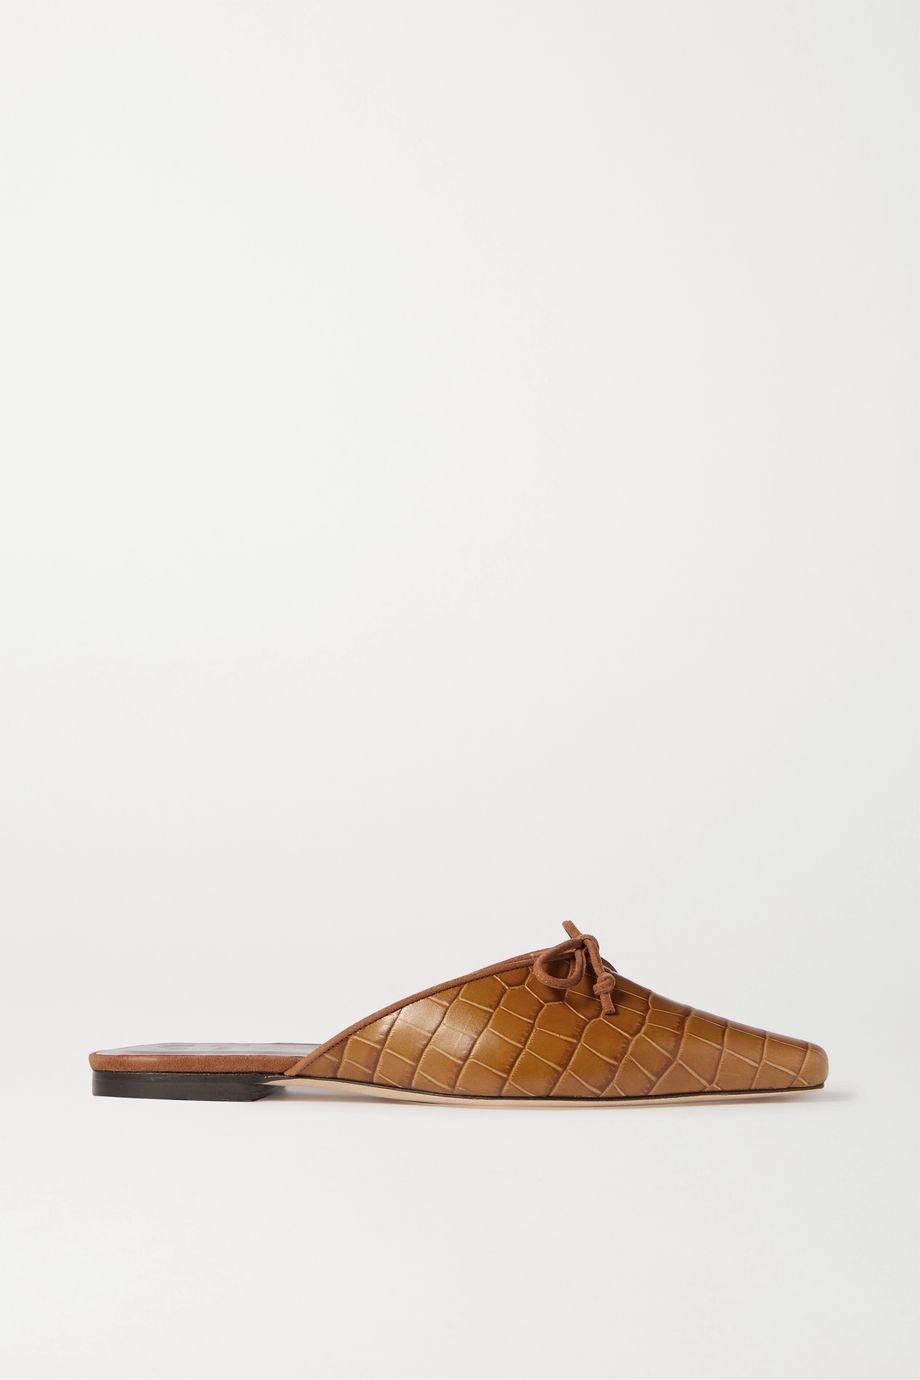 STAUD Gina croc-effect leather slippers